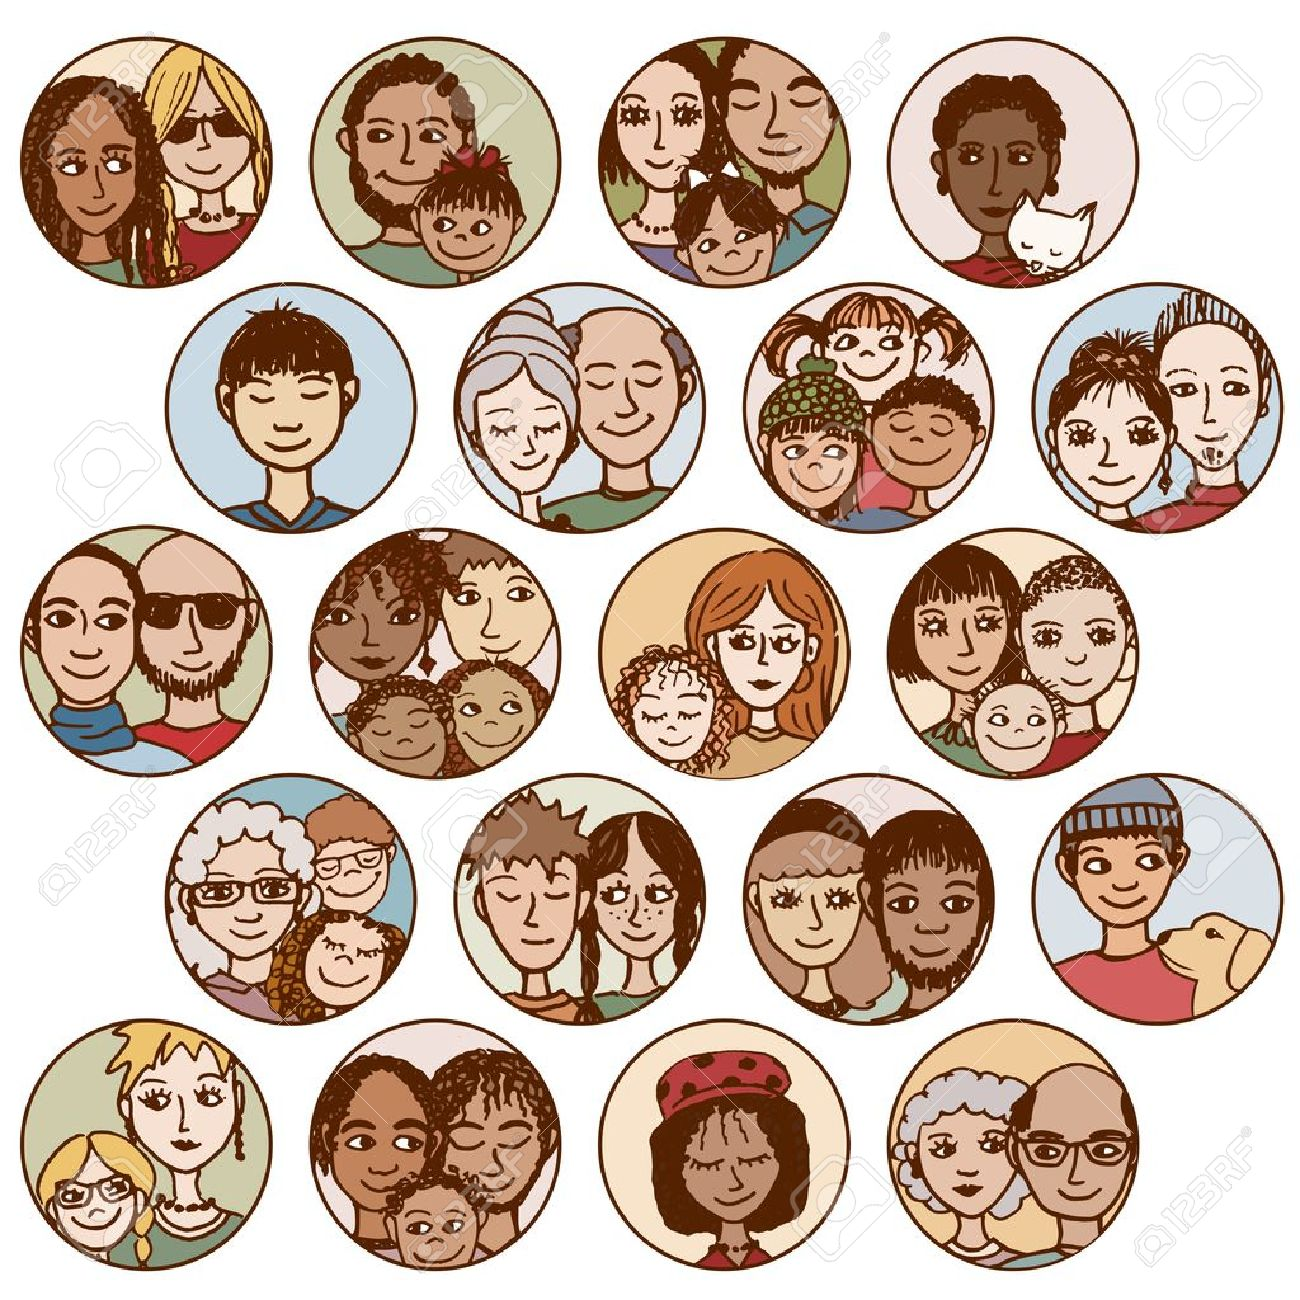 Multicultural Friends Clipart.